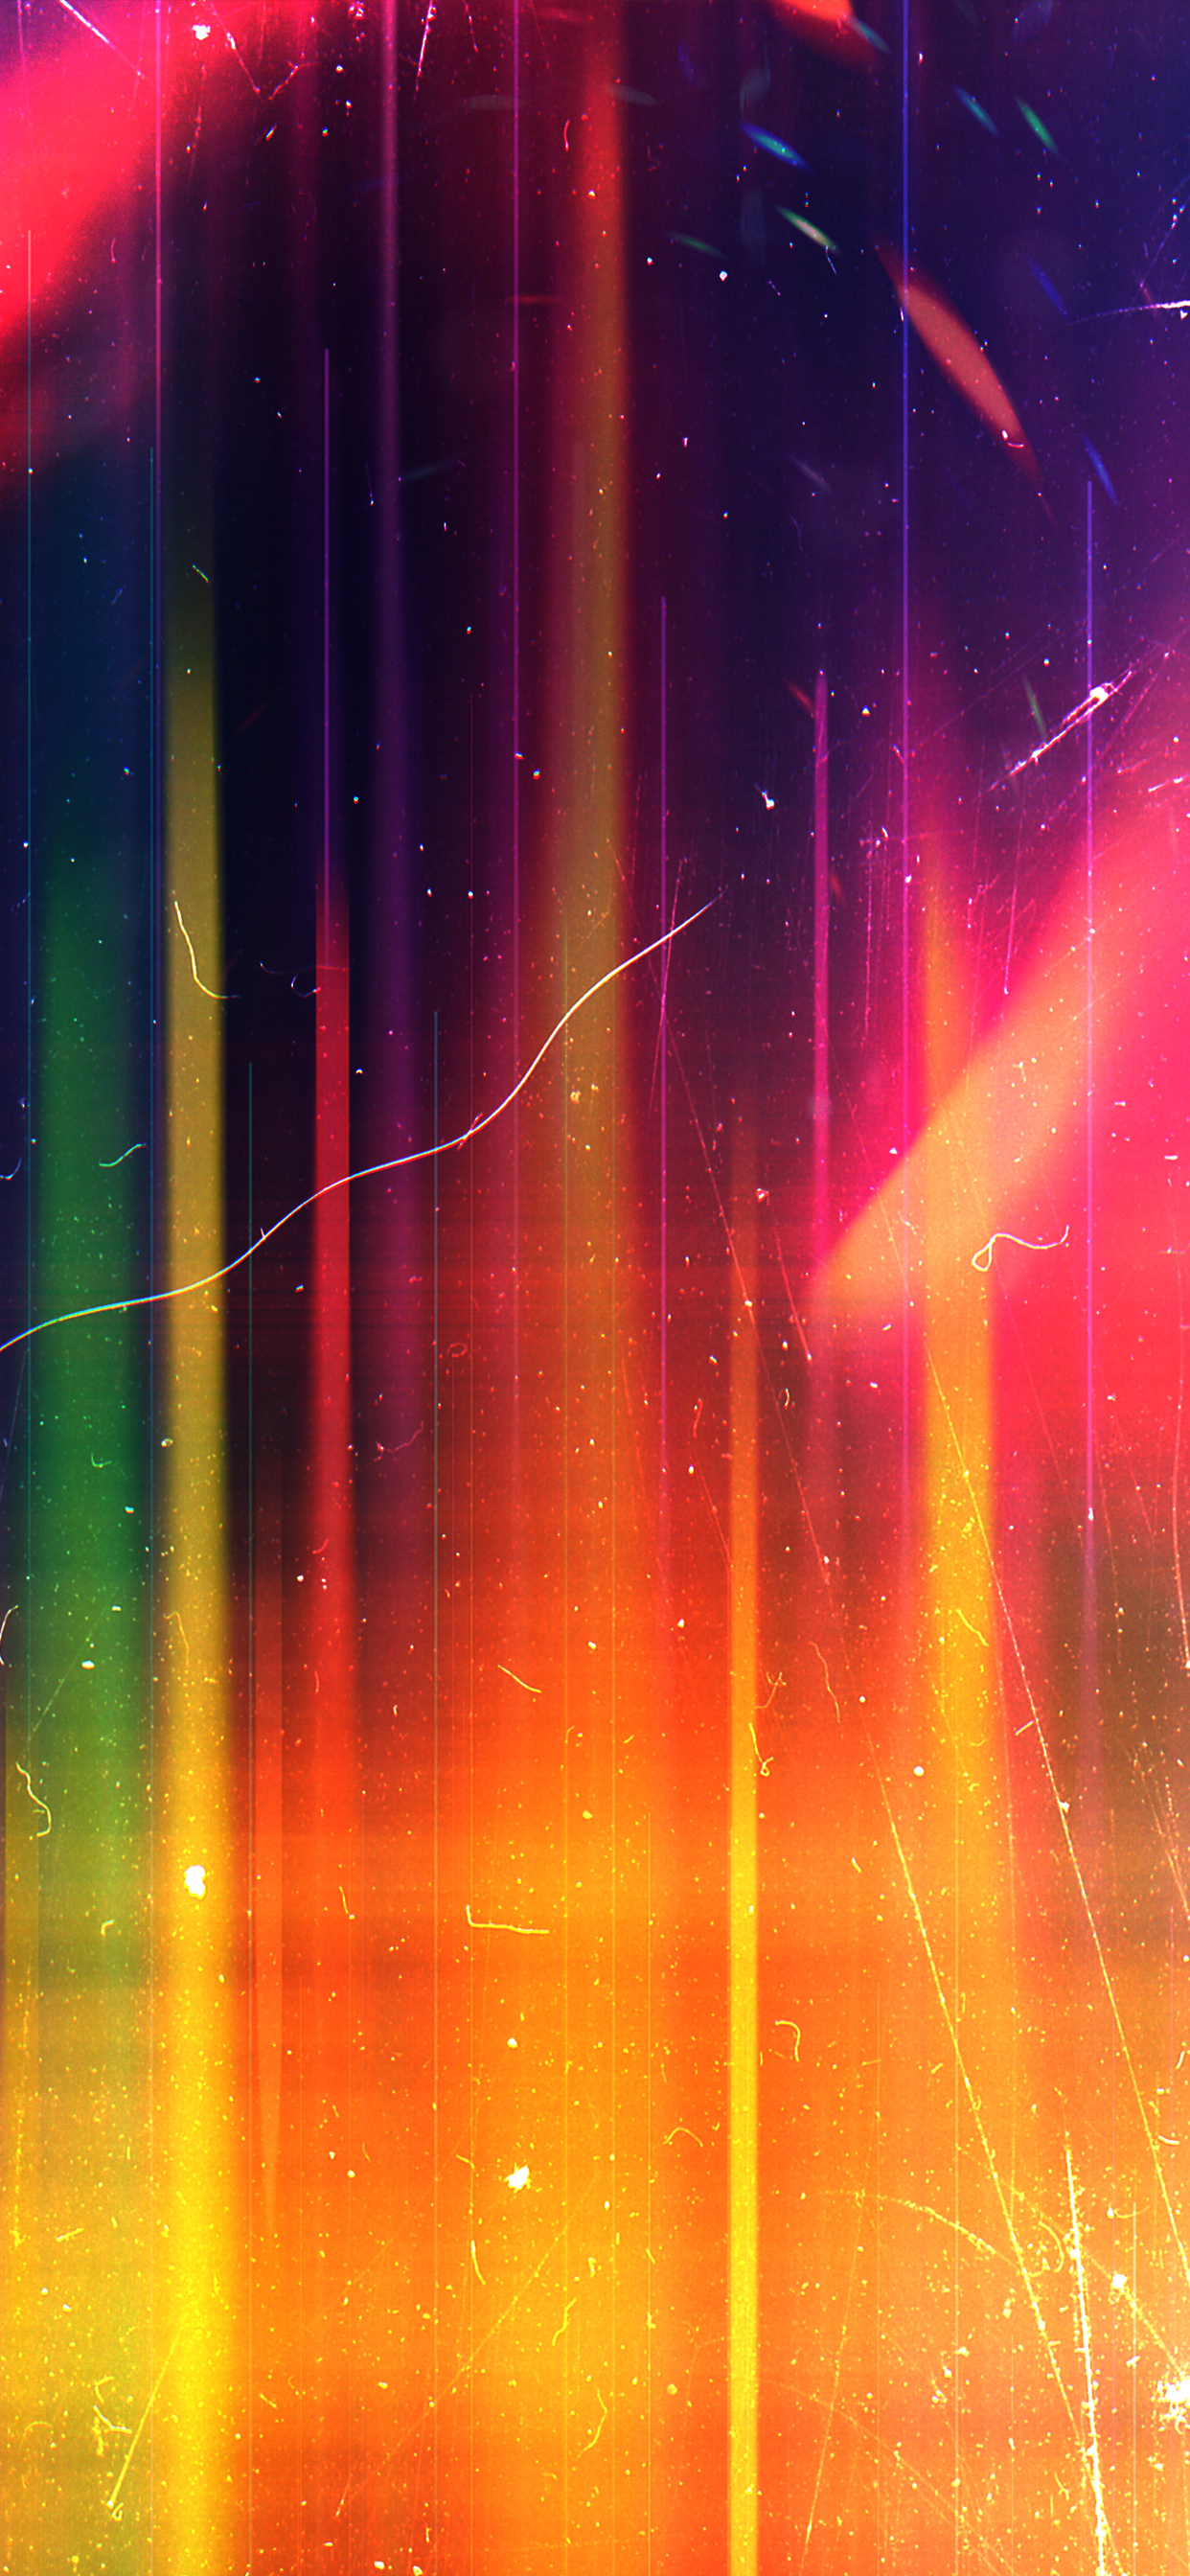 4k-abstract-splash-art-1z.jpg